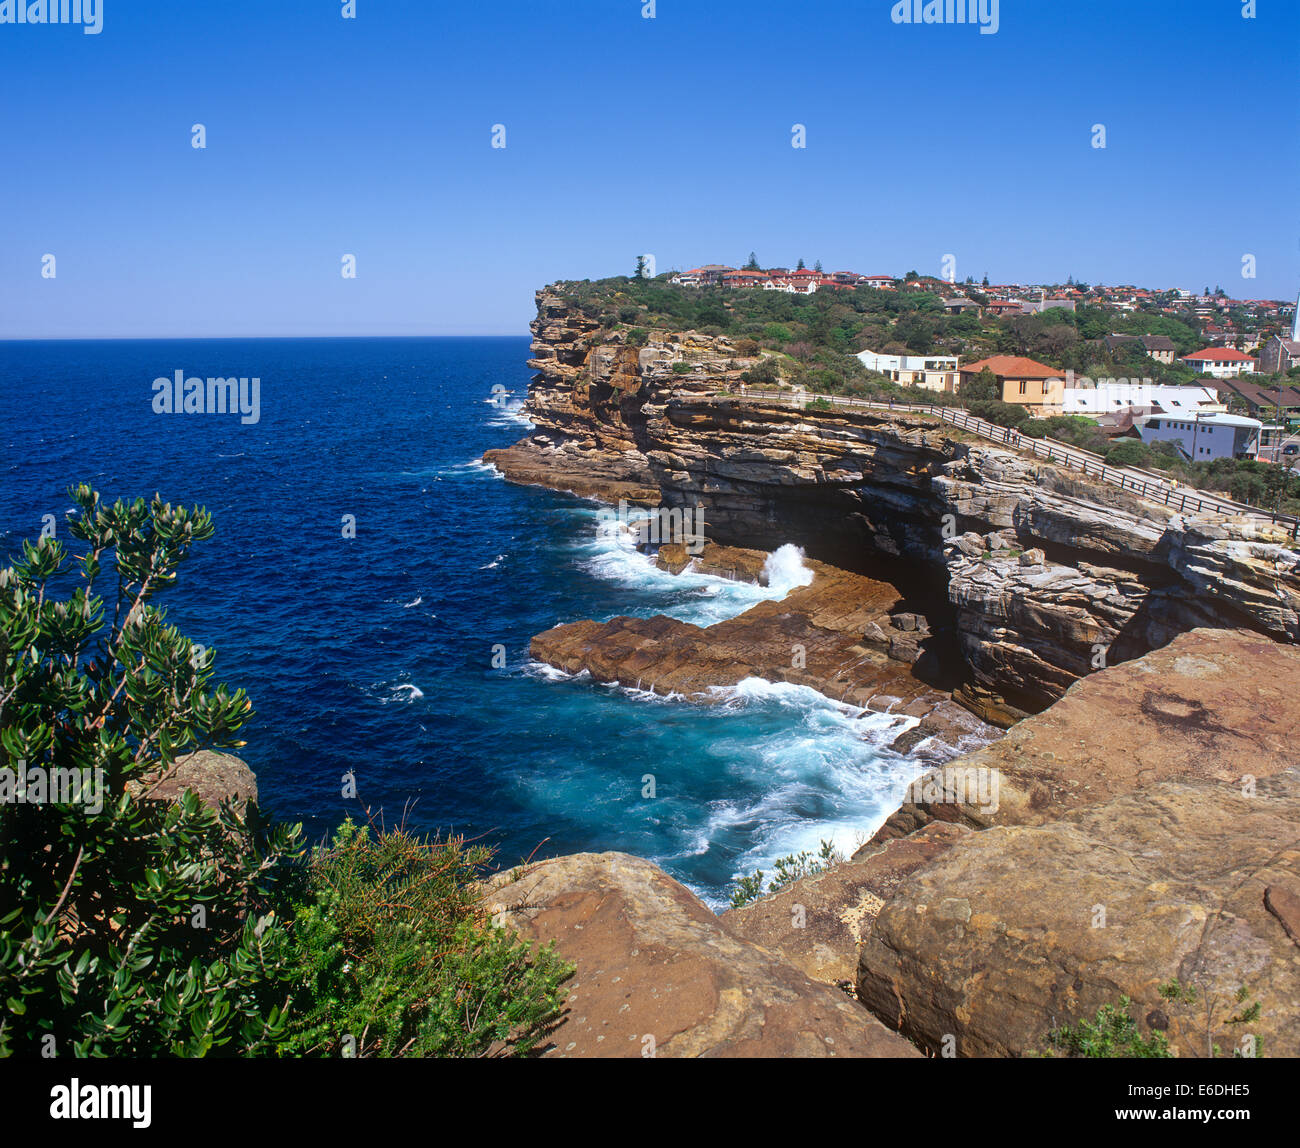 cliffs the gap sydney new south wales australia - Stock Image